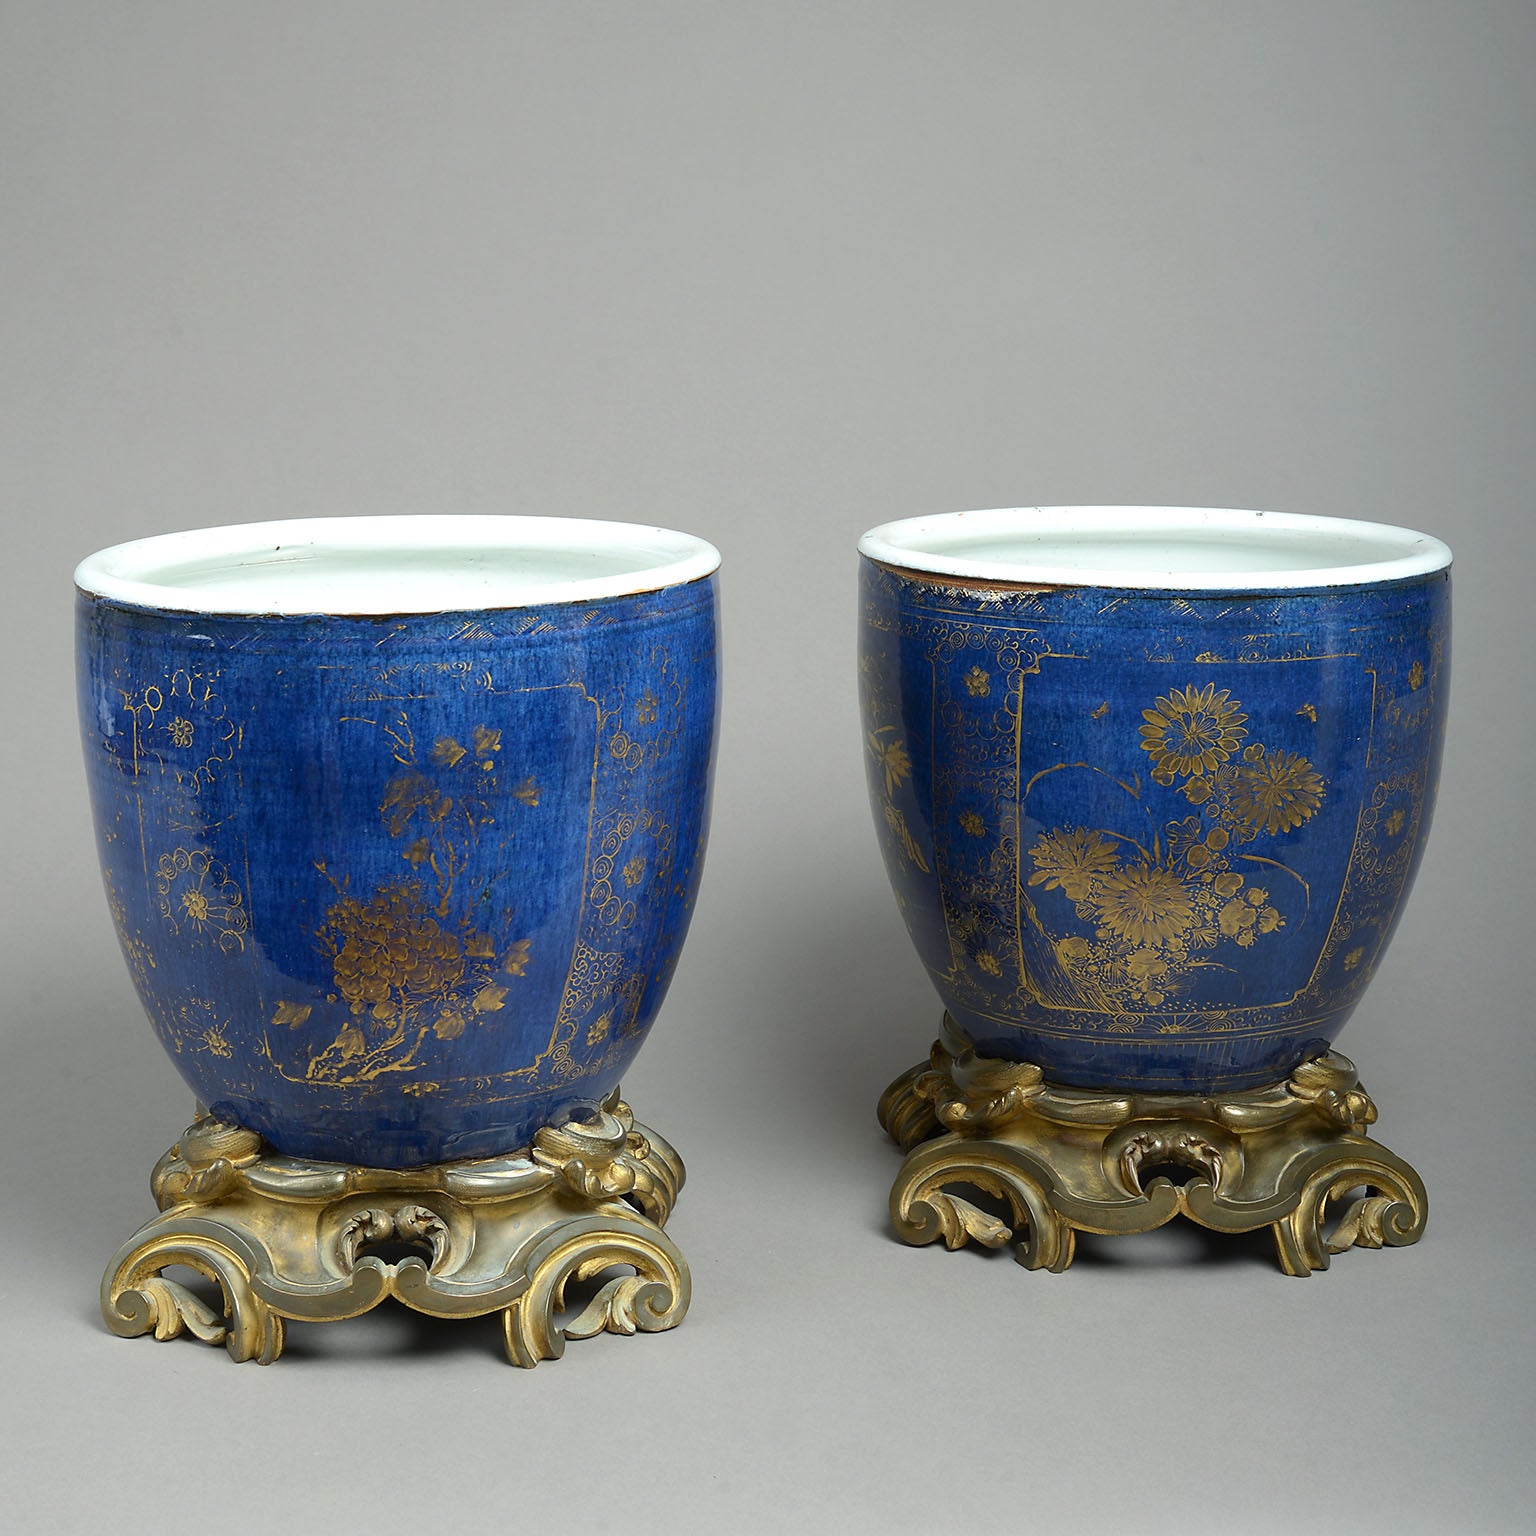 Pair of Chinese Powder Blue Gilt Decorated Vases